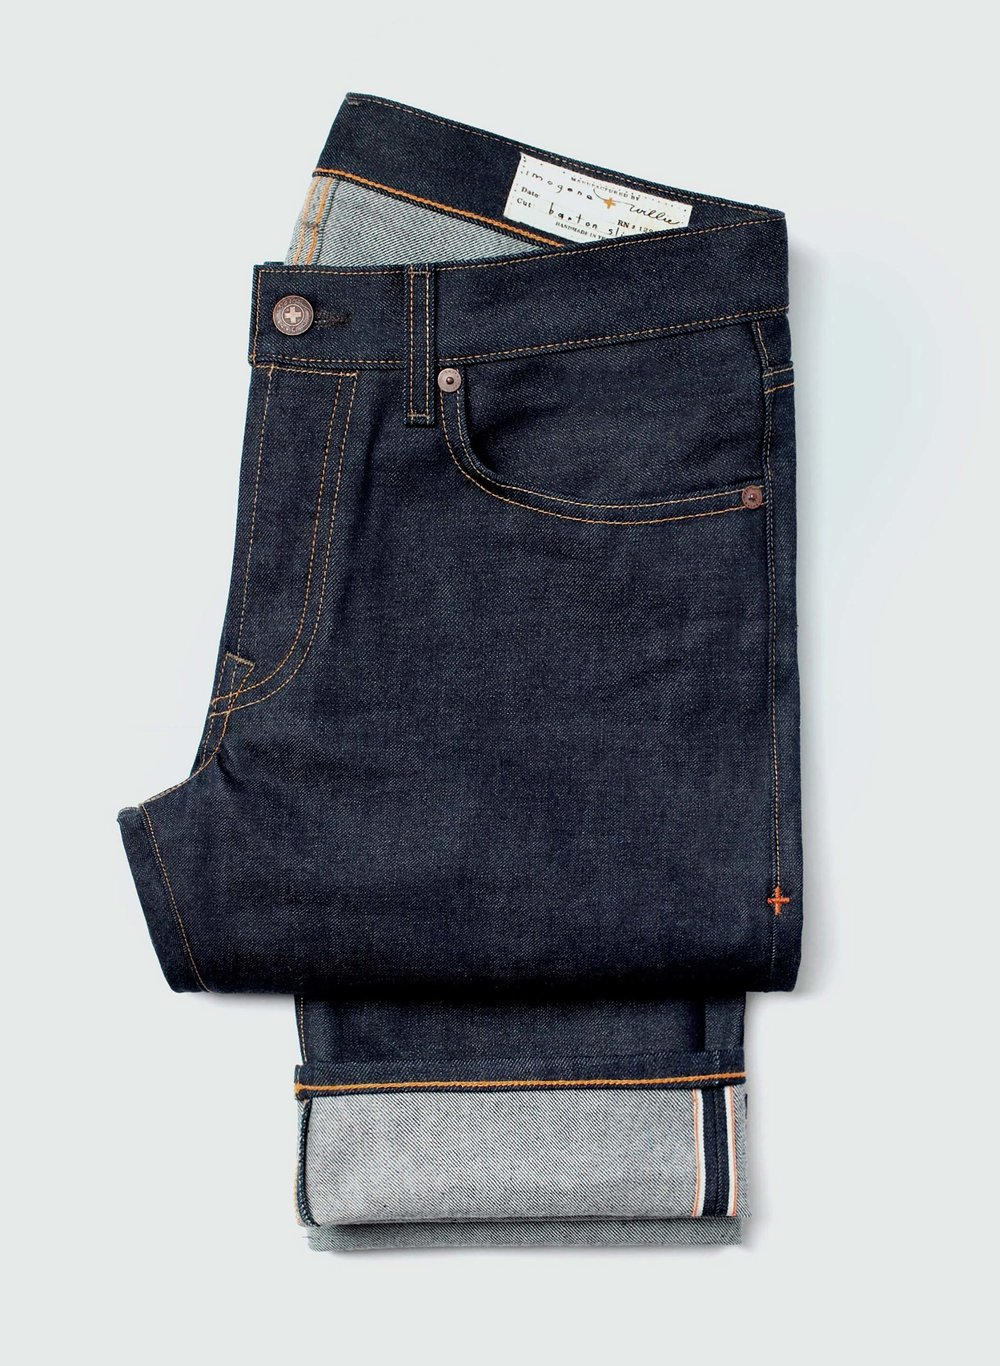 If you have to buy new Denim Jeans, check out The GoodTrade's list first. - 16 Fair Trade & Eco-Friendly Denim Brands You Should Know Exist. Jeans in picture from Nashville brand Imogene and Willie.